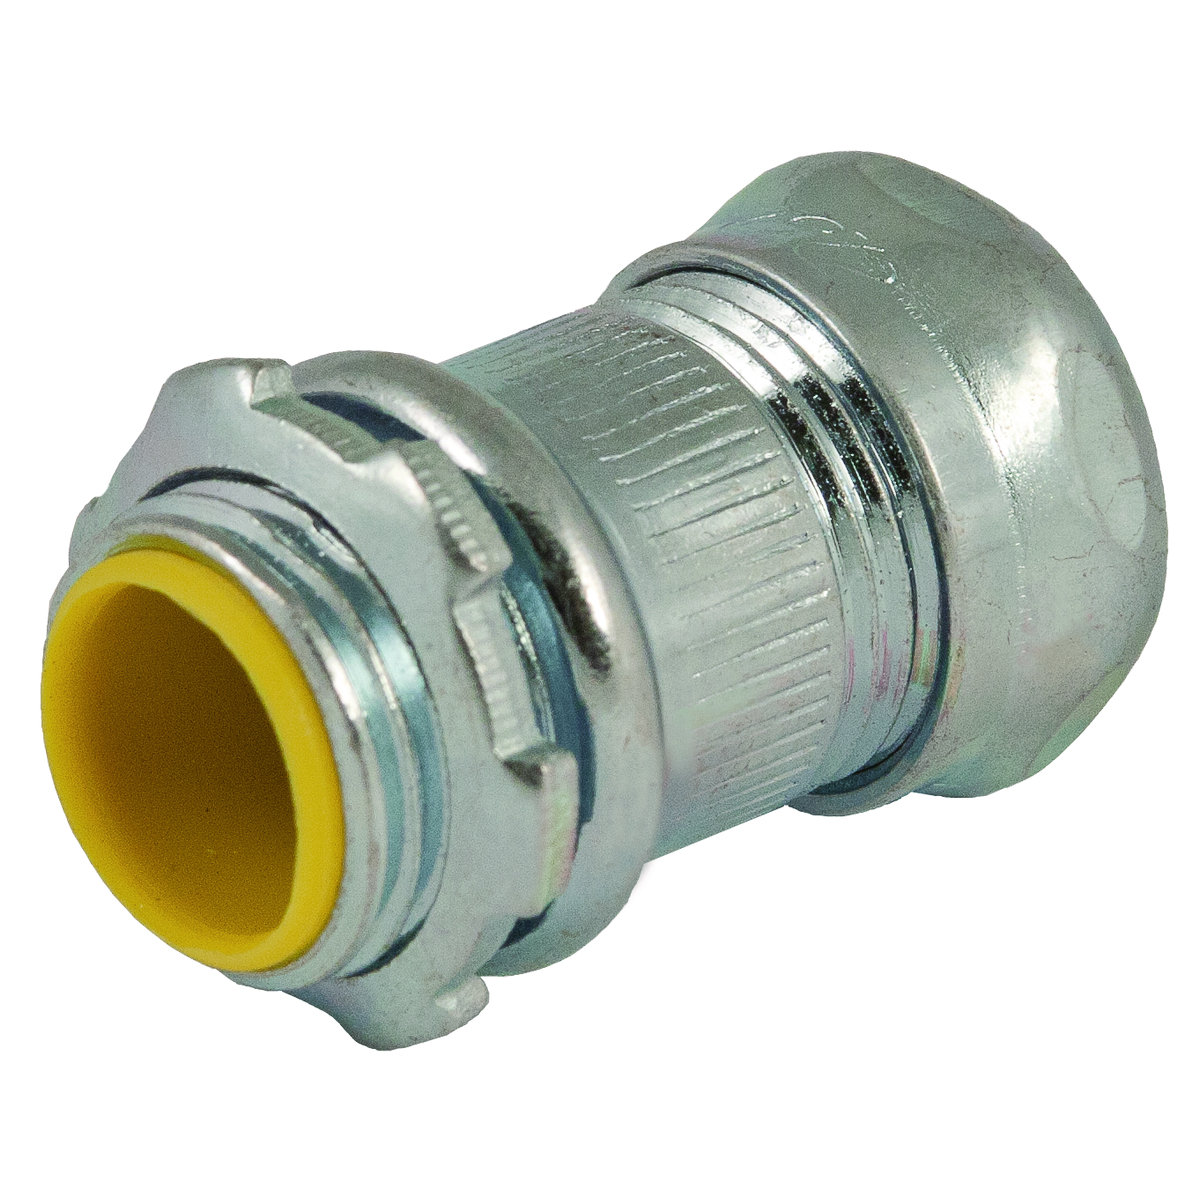 Hubbell-Raco 2918 Compression Connector